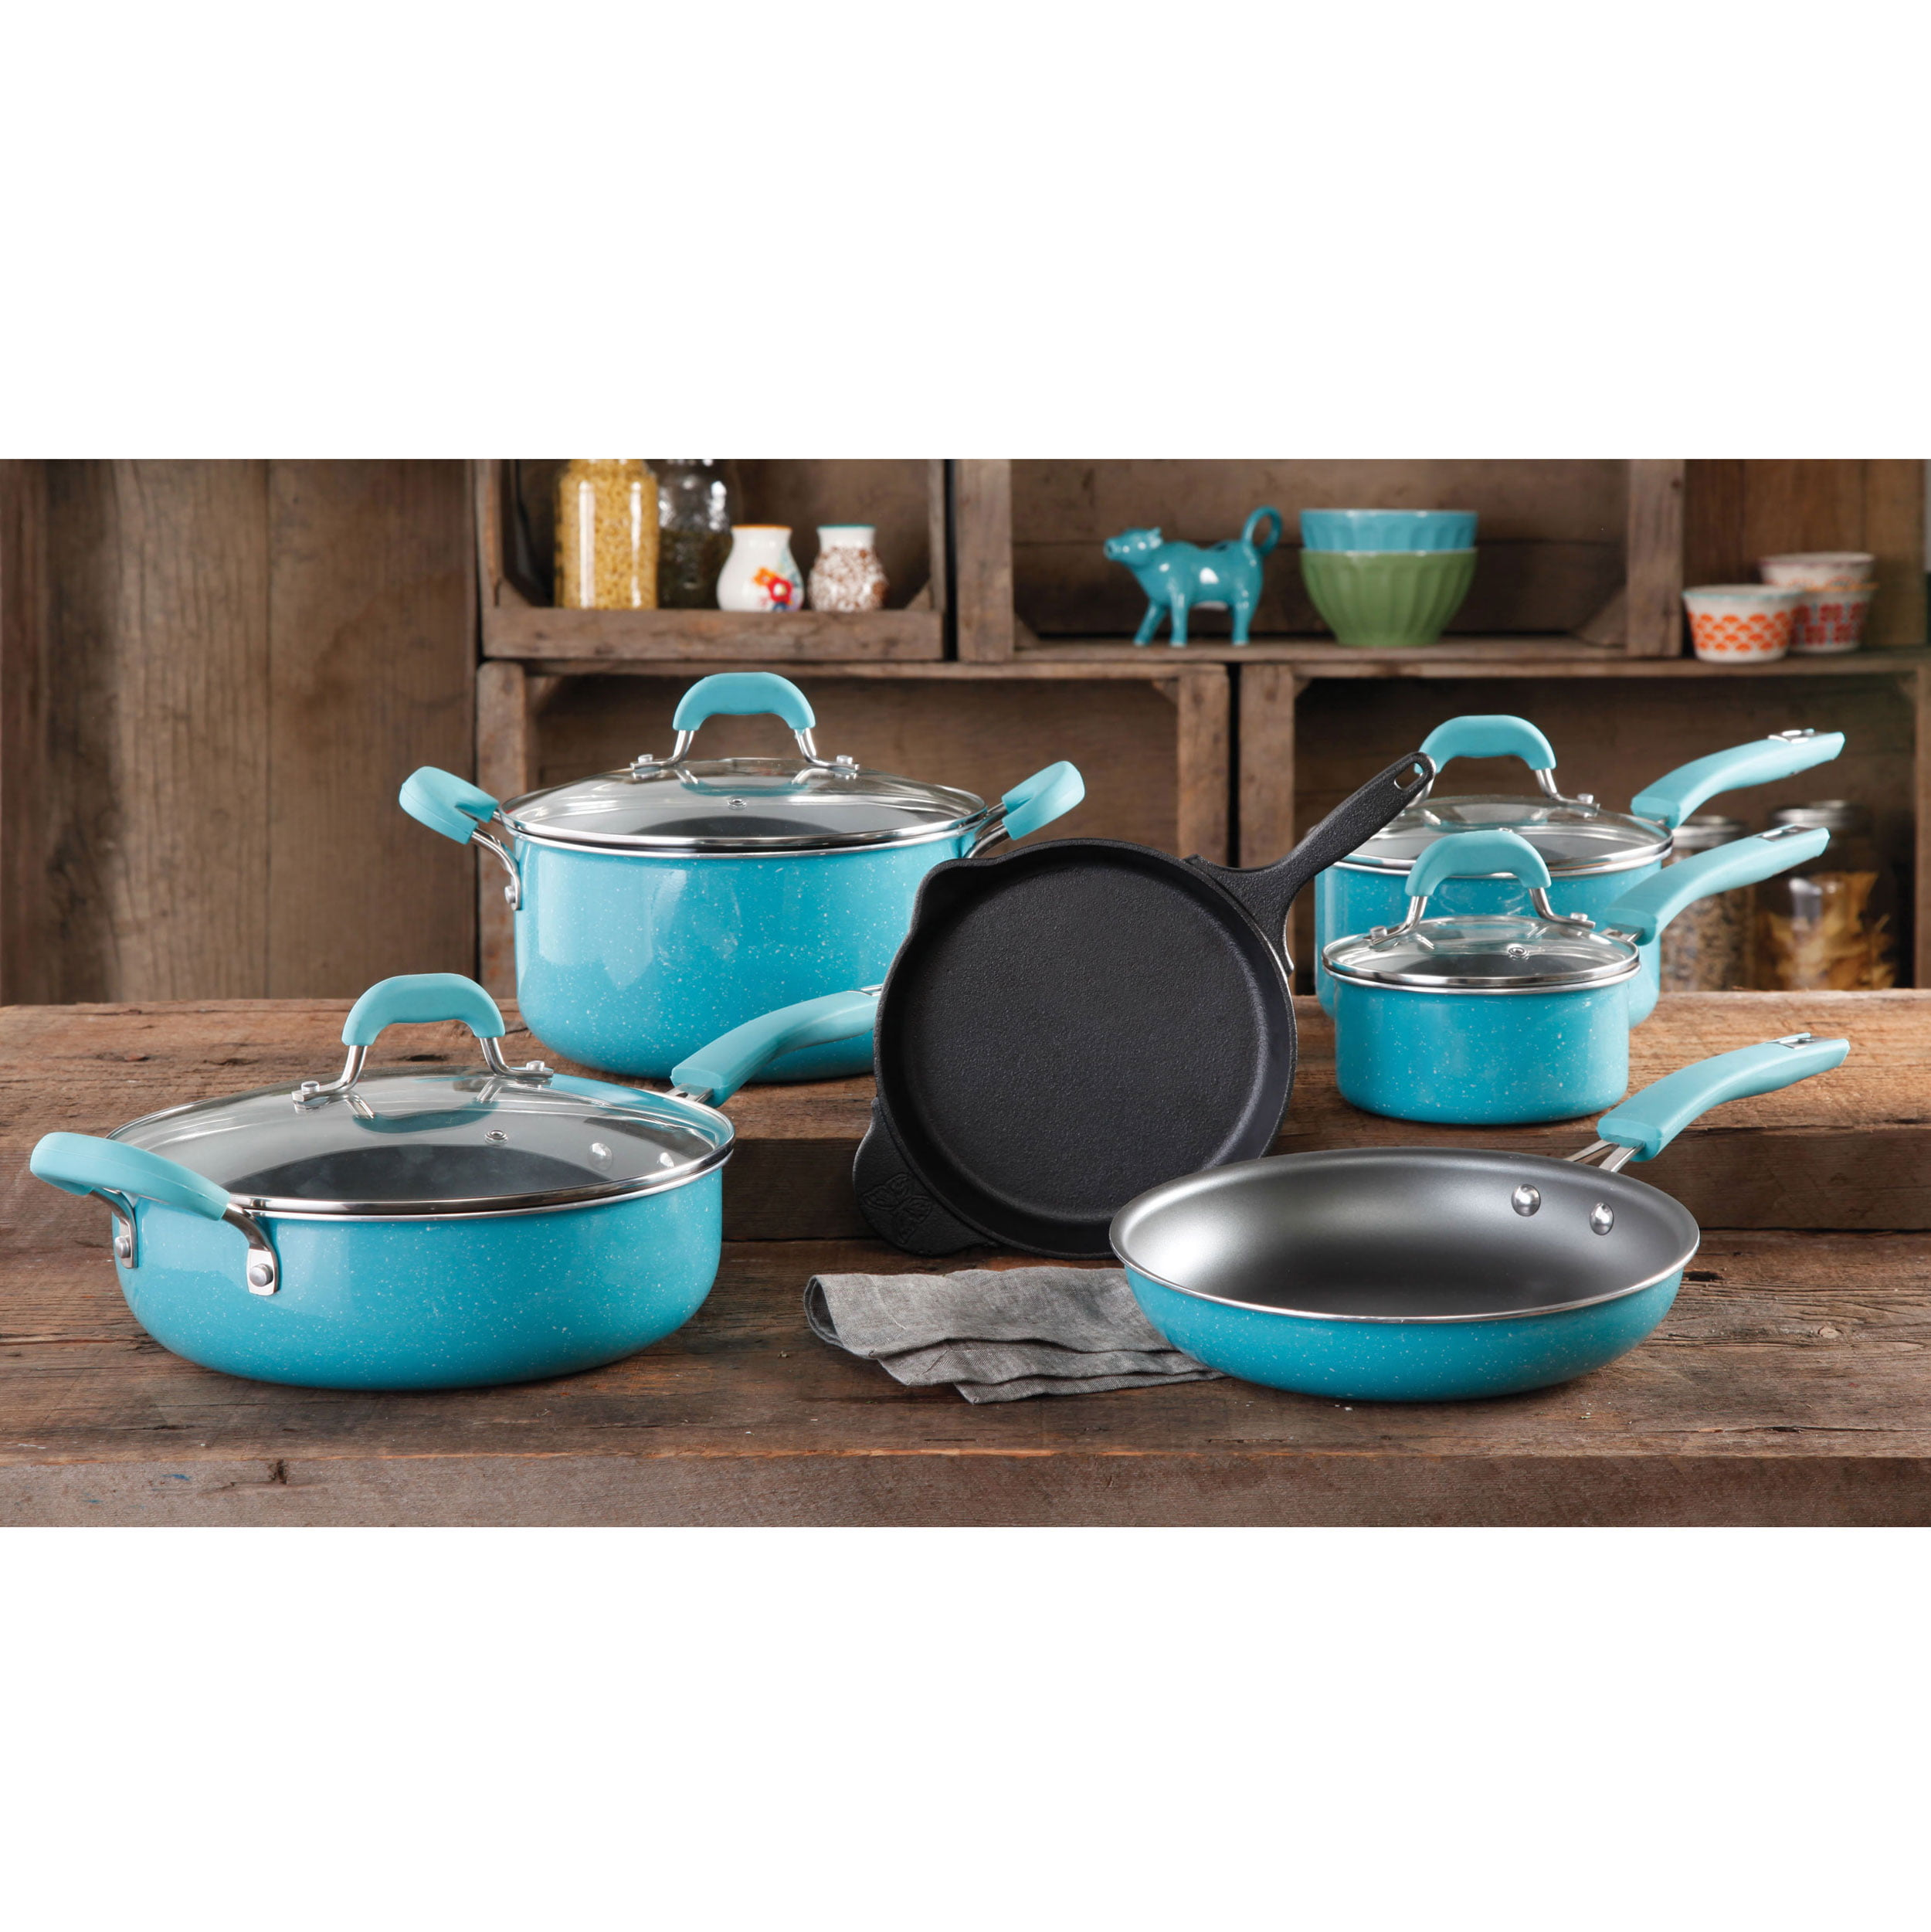 The Pioneer Woman Vintage Speckle 10 Piece Non-Stick Pre-Seasoned Cookware Set by Gibson Oversea Inc.